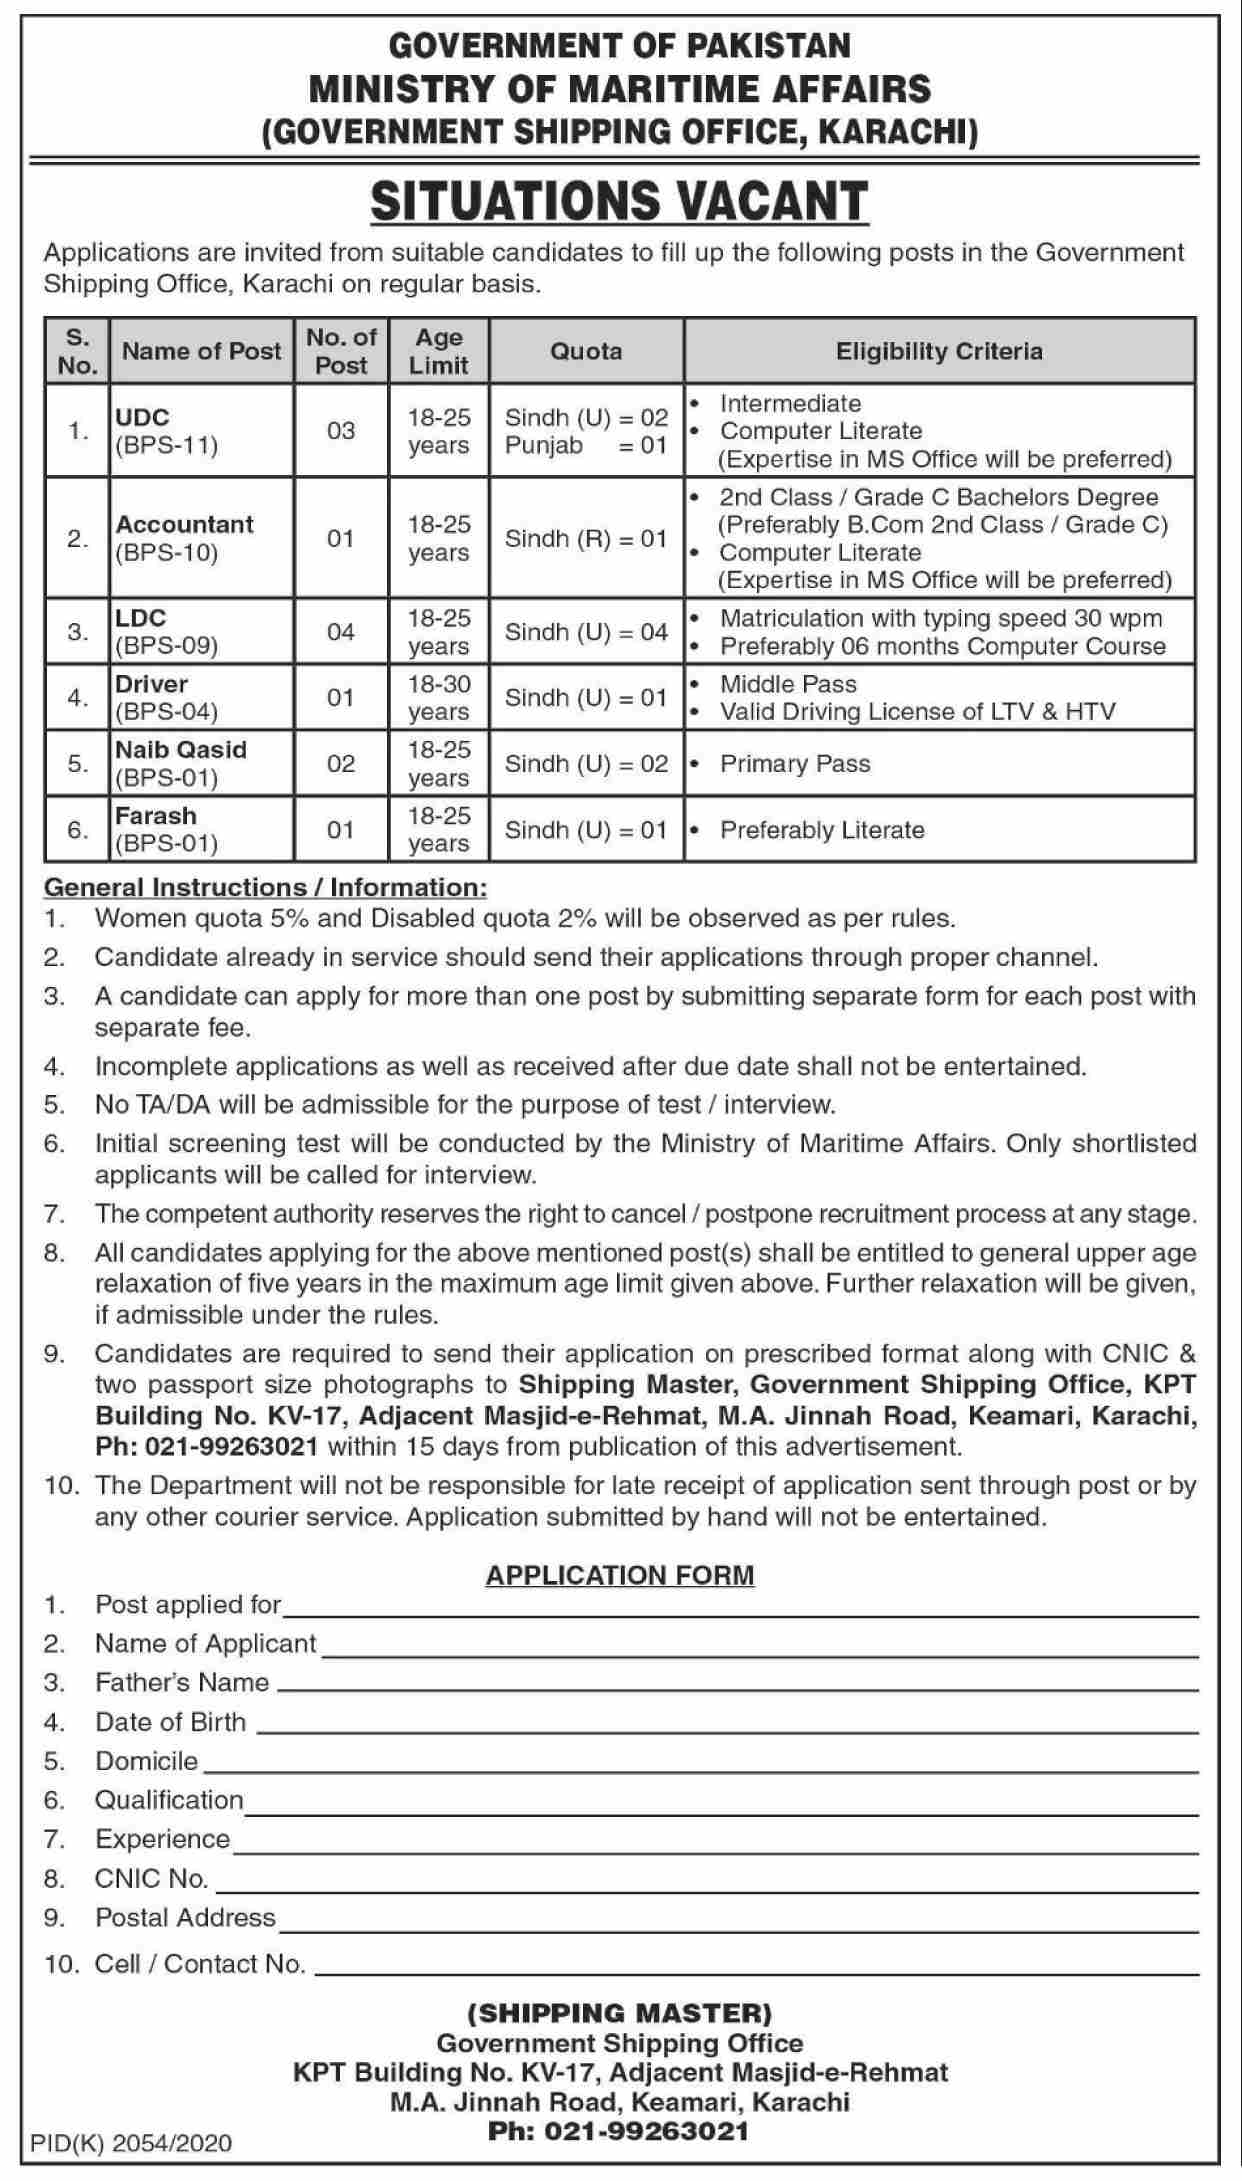 Government of Pakistan Ministry of Maritime Affairs Jobs January 2021